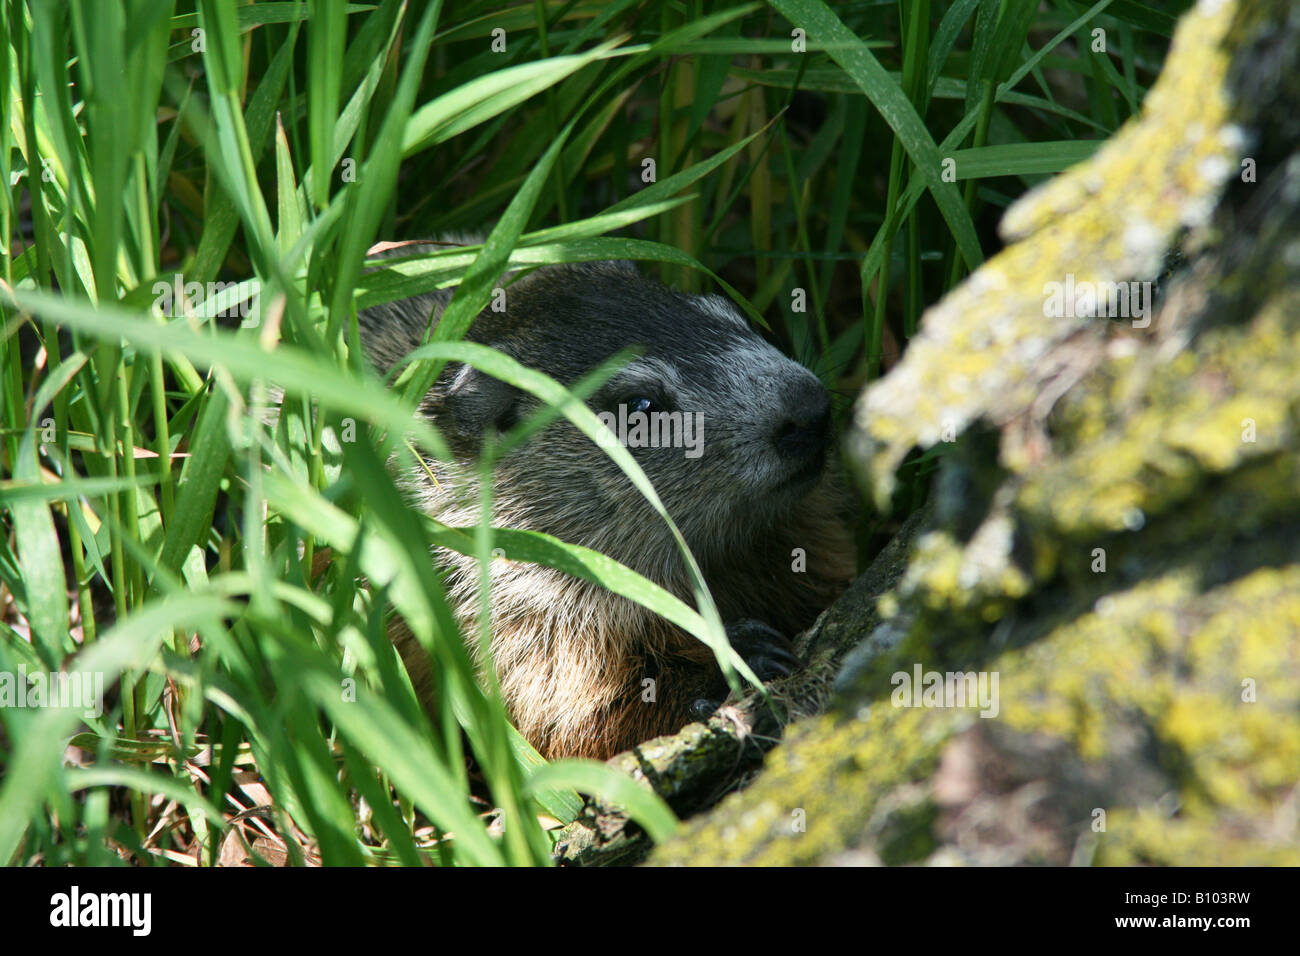 Baby Groundhog or Woodchuck in den entrance Marmota monax Eastern North America - Stock Image